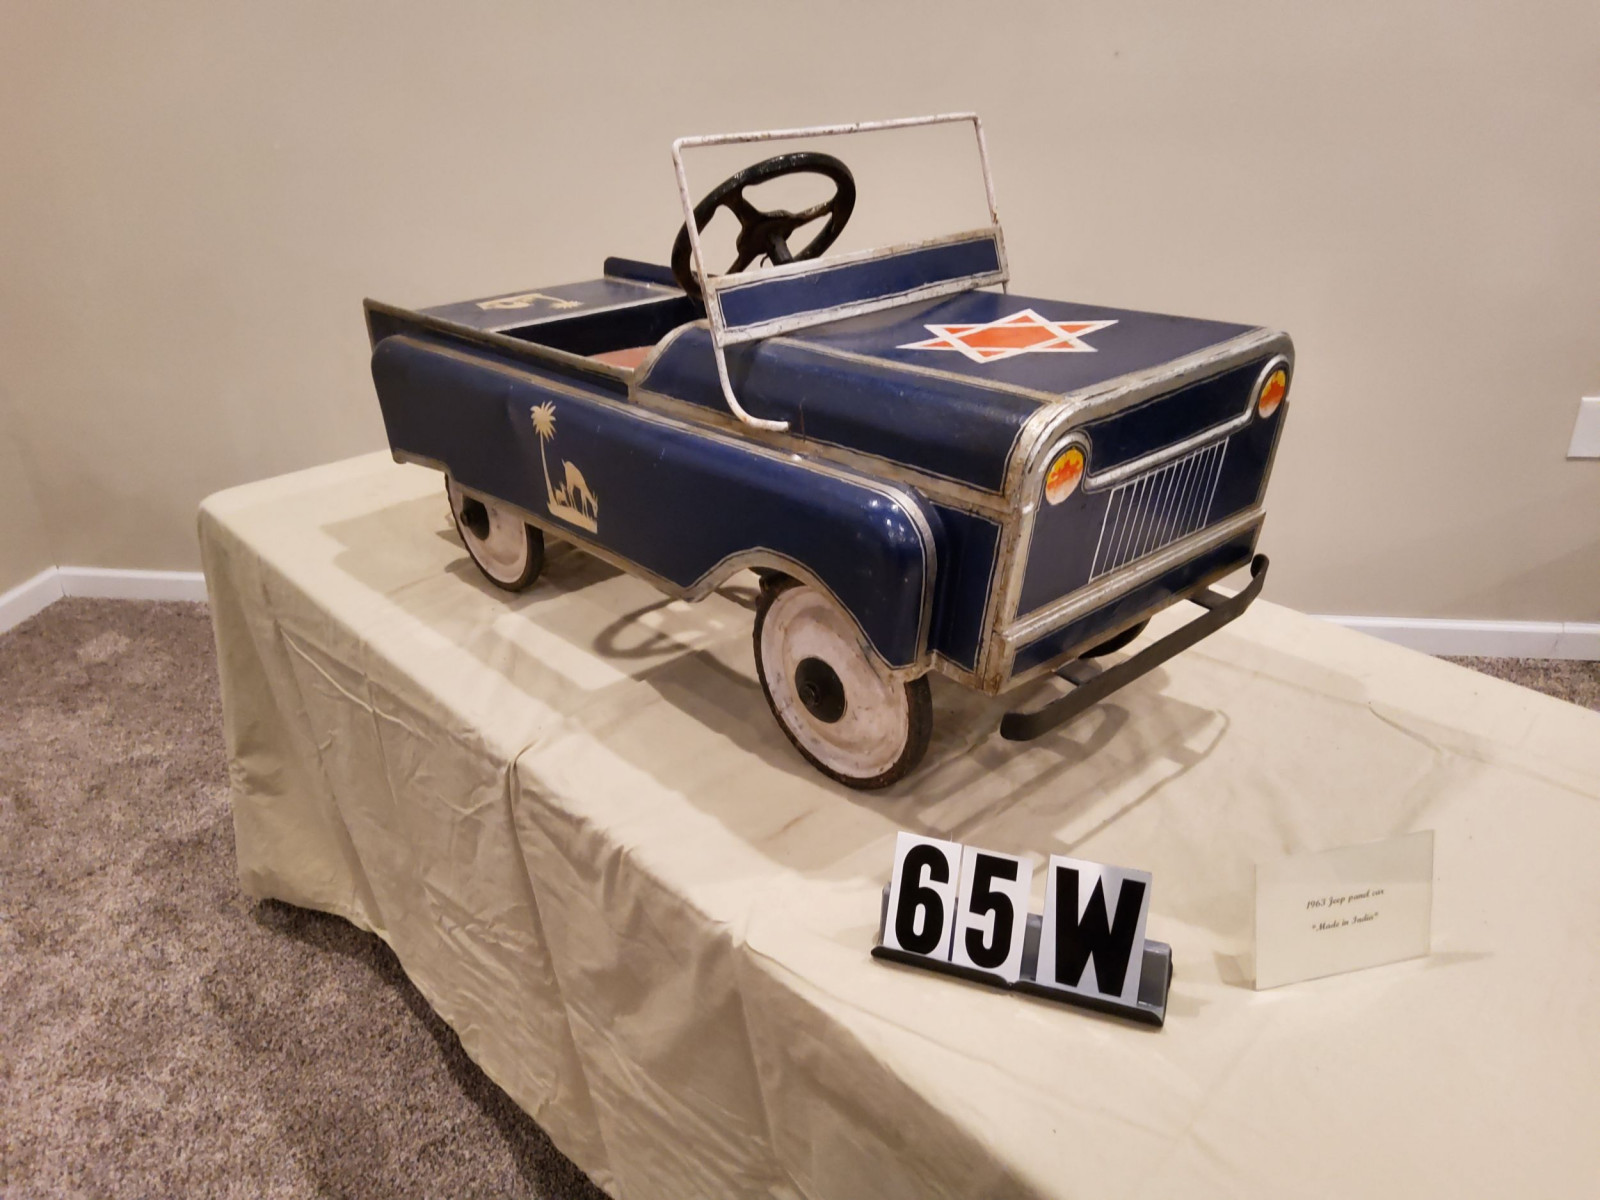 1963 Jeep Pedal Car - Image 1